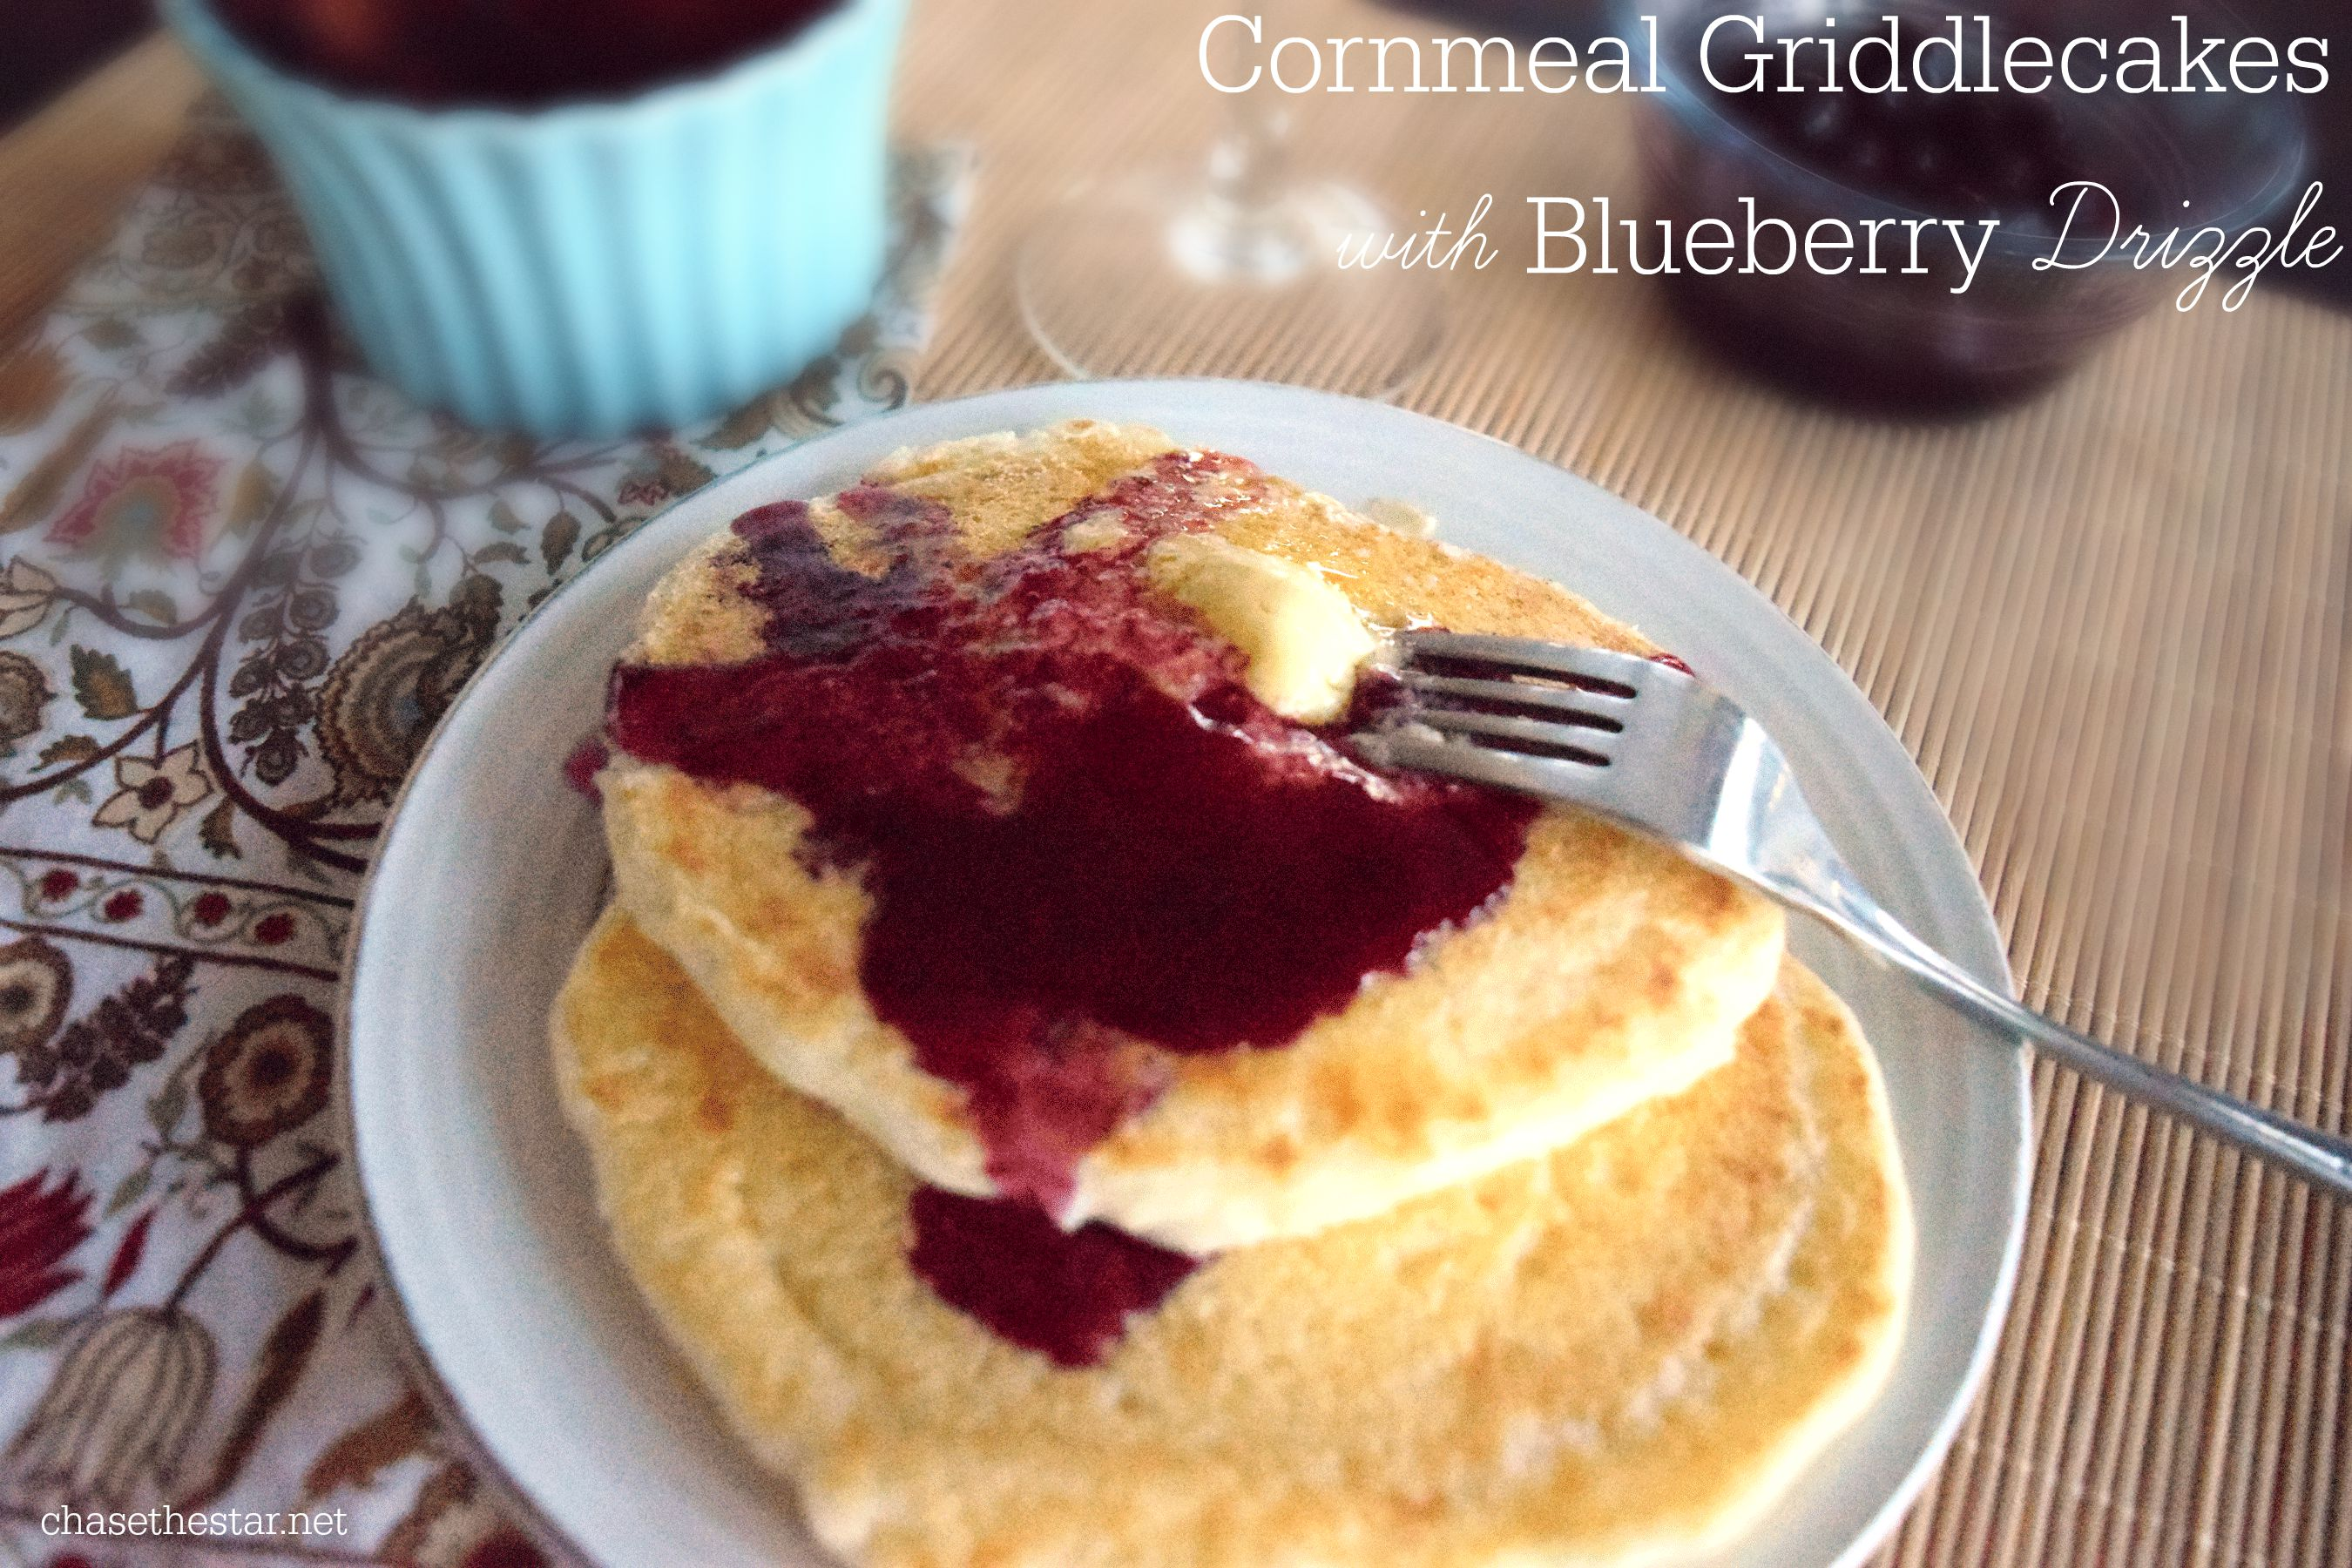 Cornmeal Griddlecakes with Blueberry Drizzle #brunch #panfan #IC #ad